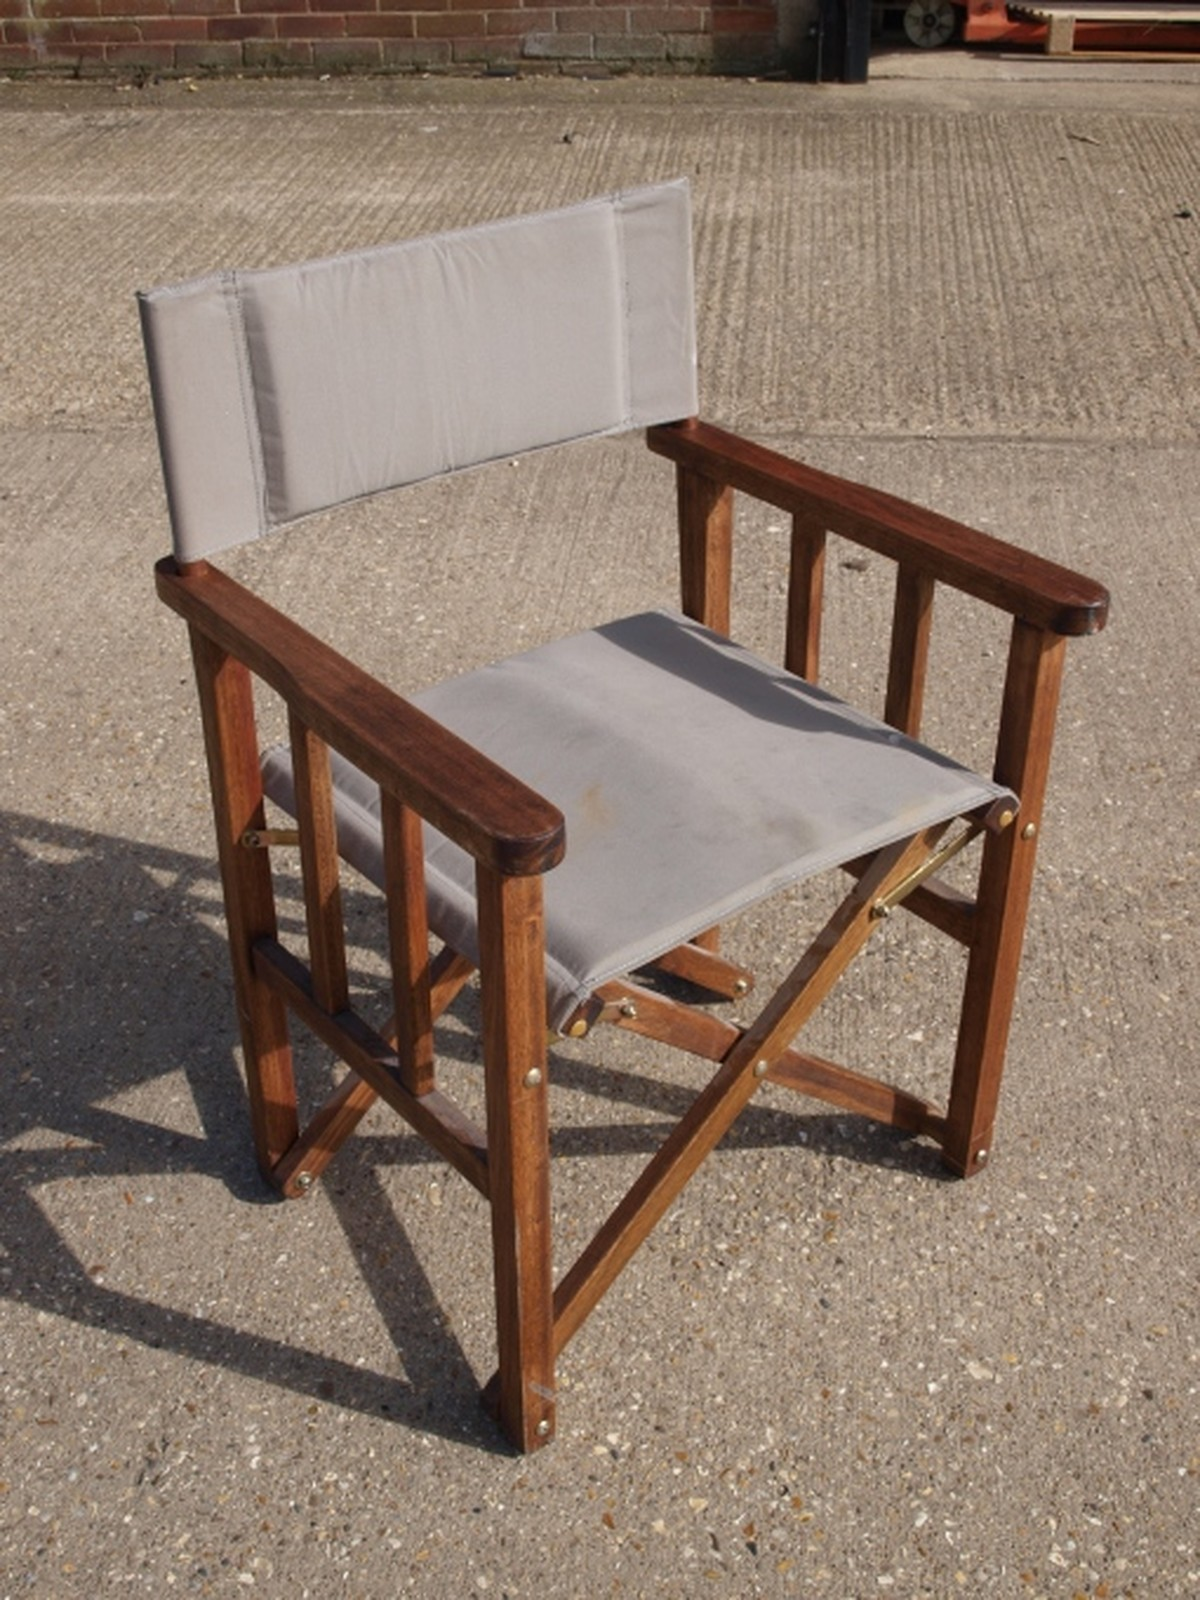 Secondhand Chairs And Tables Outdoor Furniture 20x